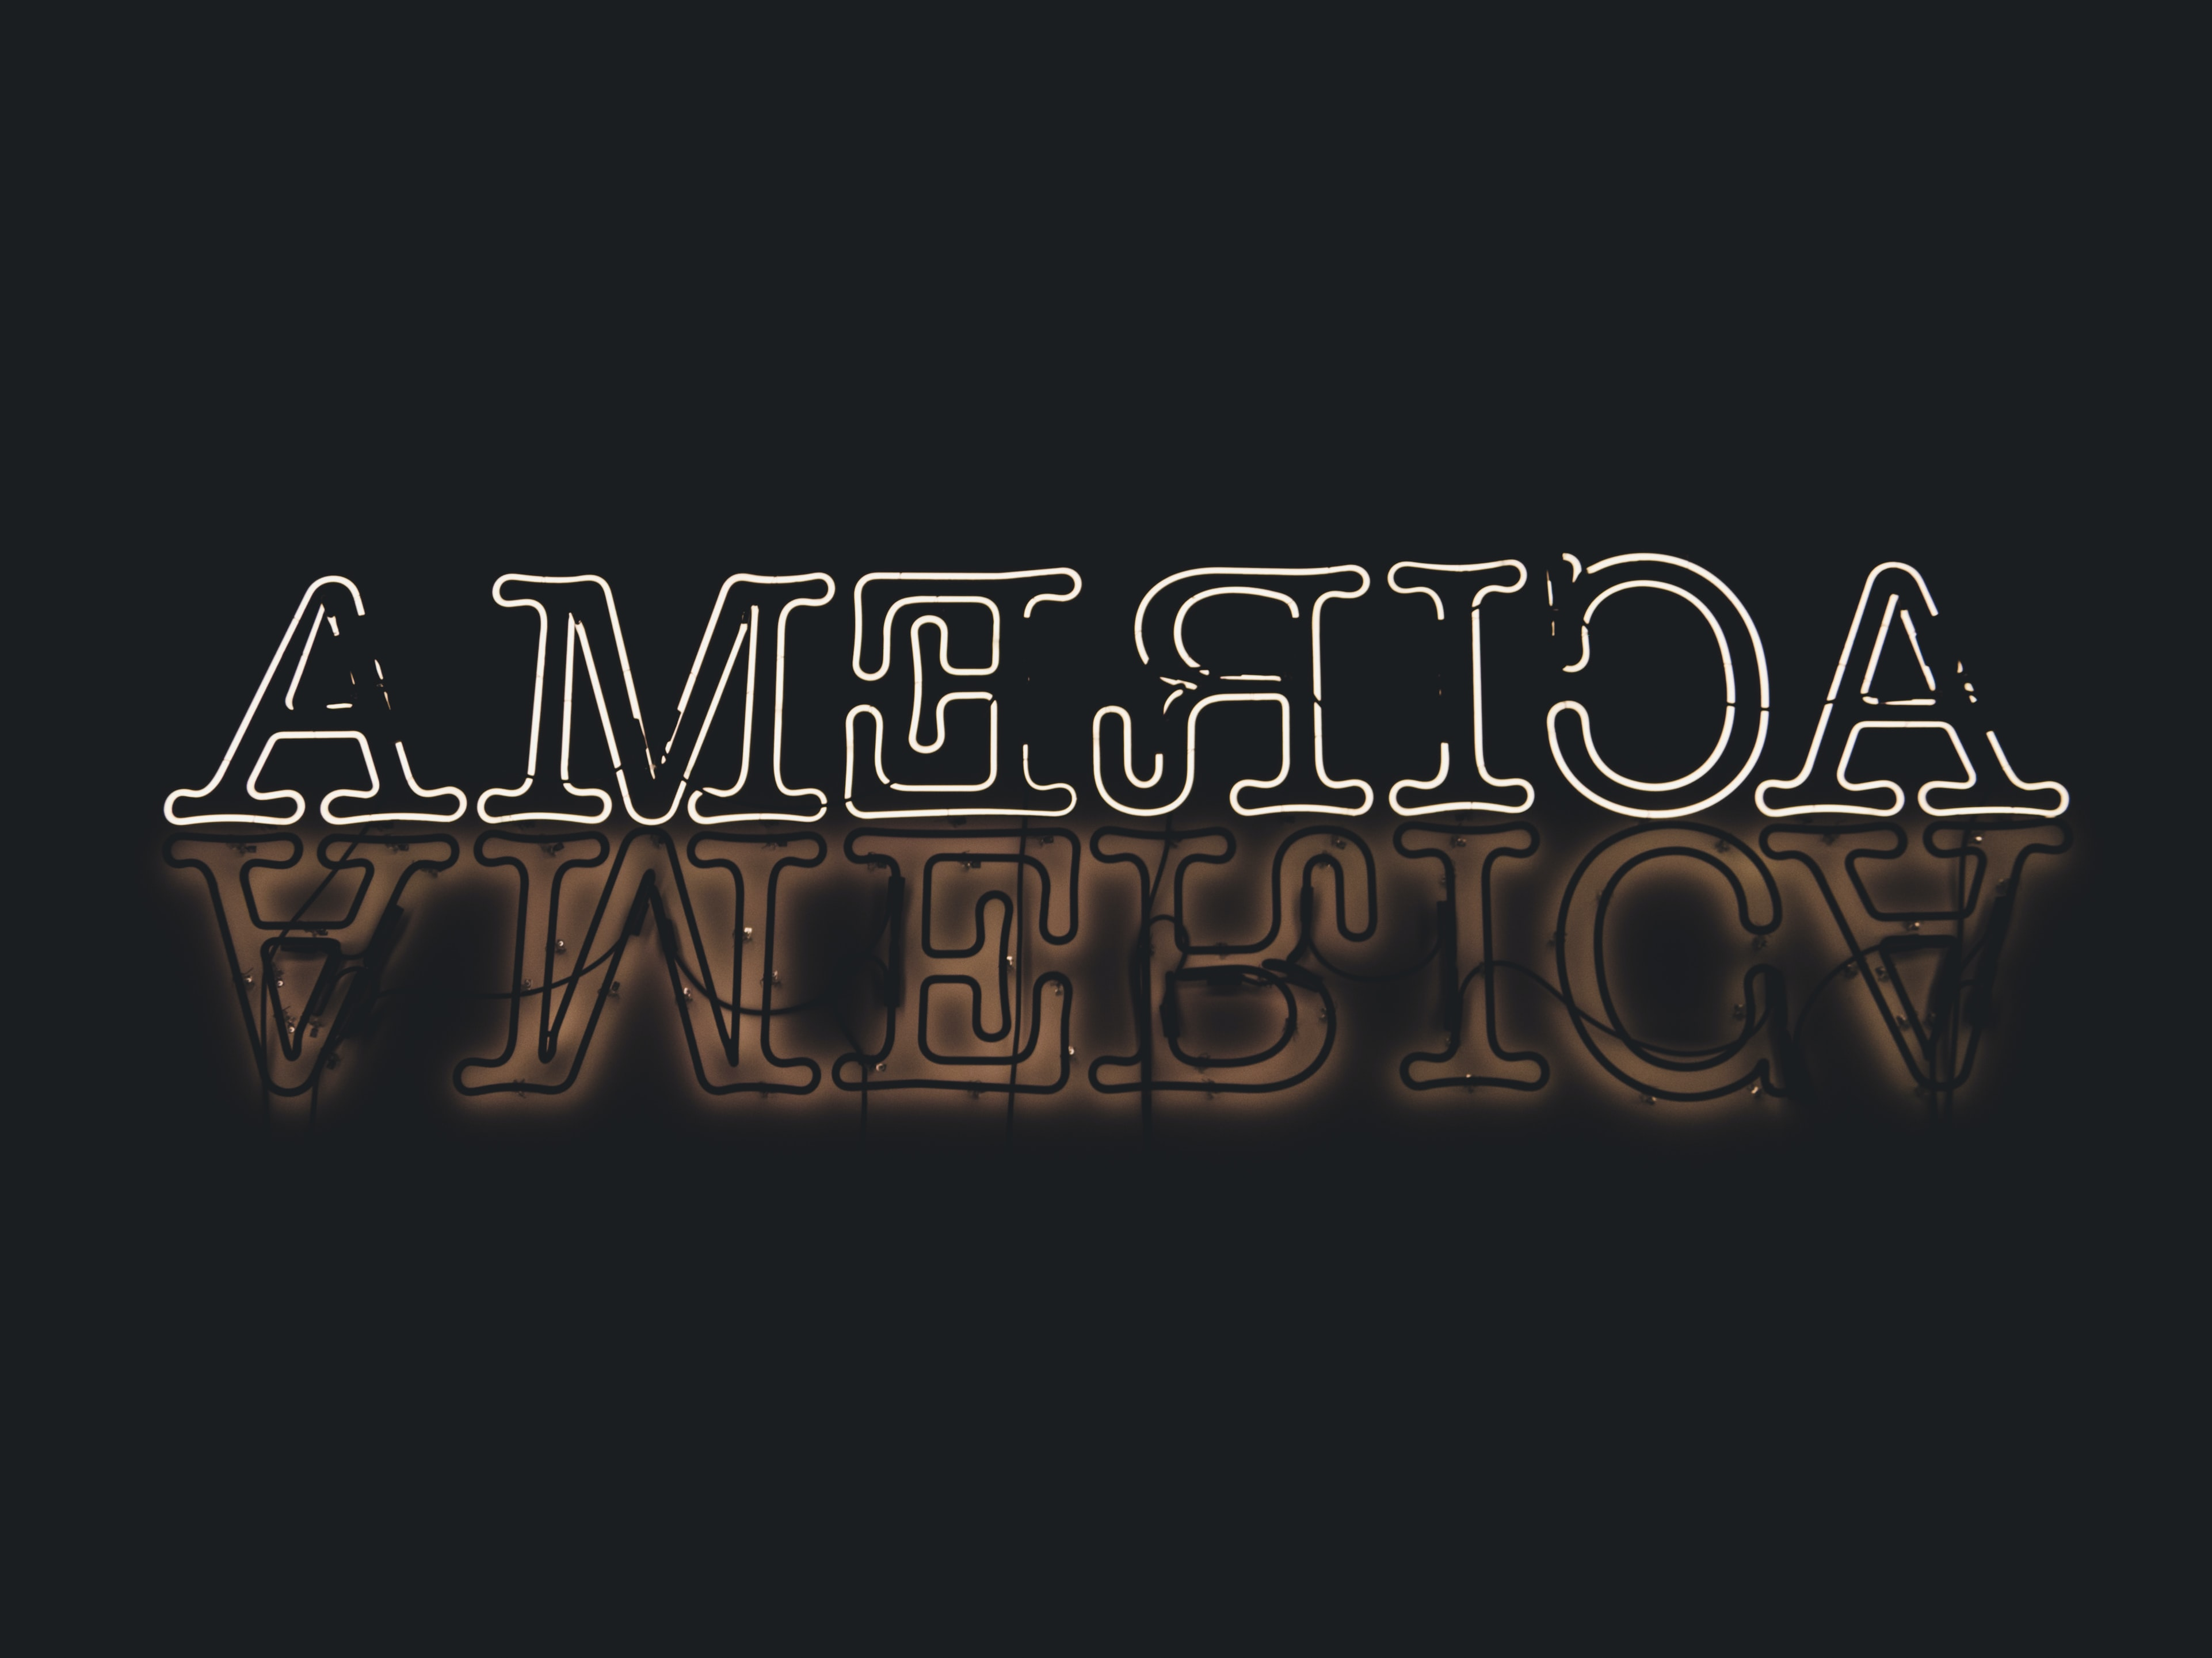 black background with America text overlay